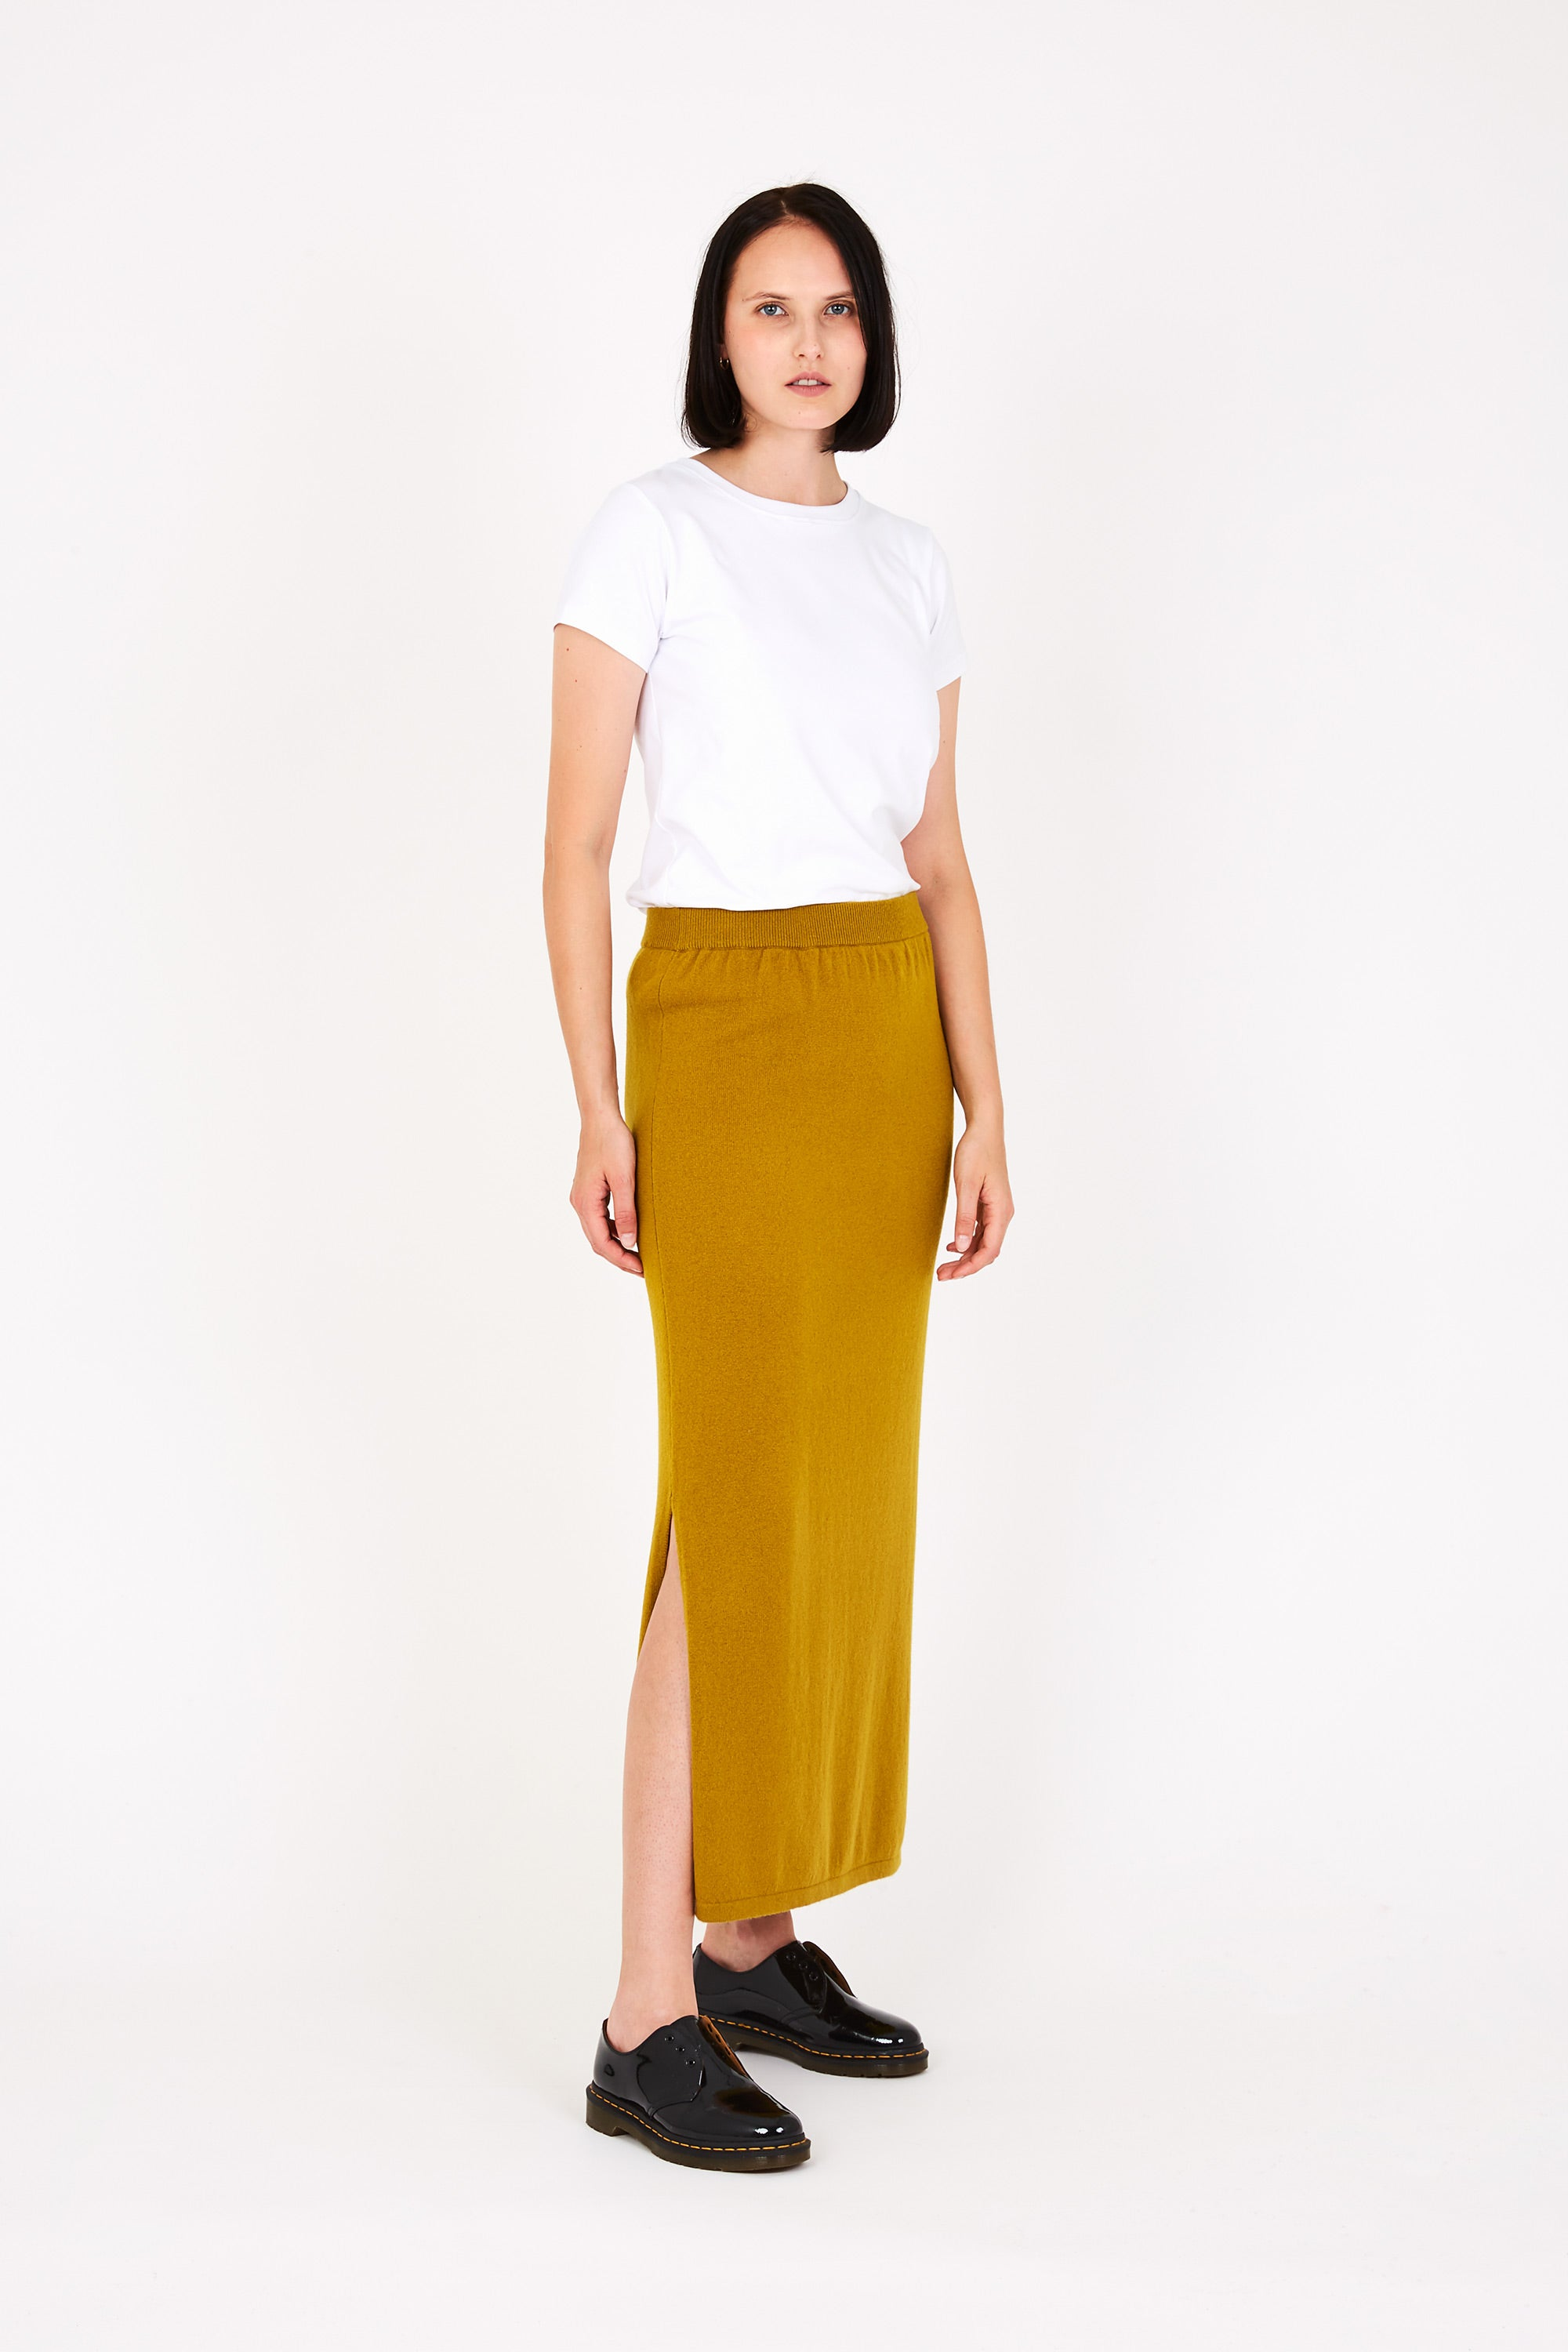 Kelly skirt in yellow